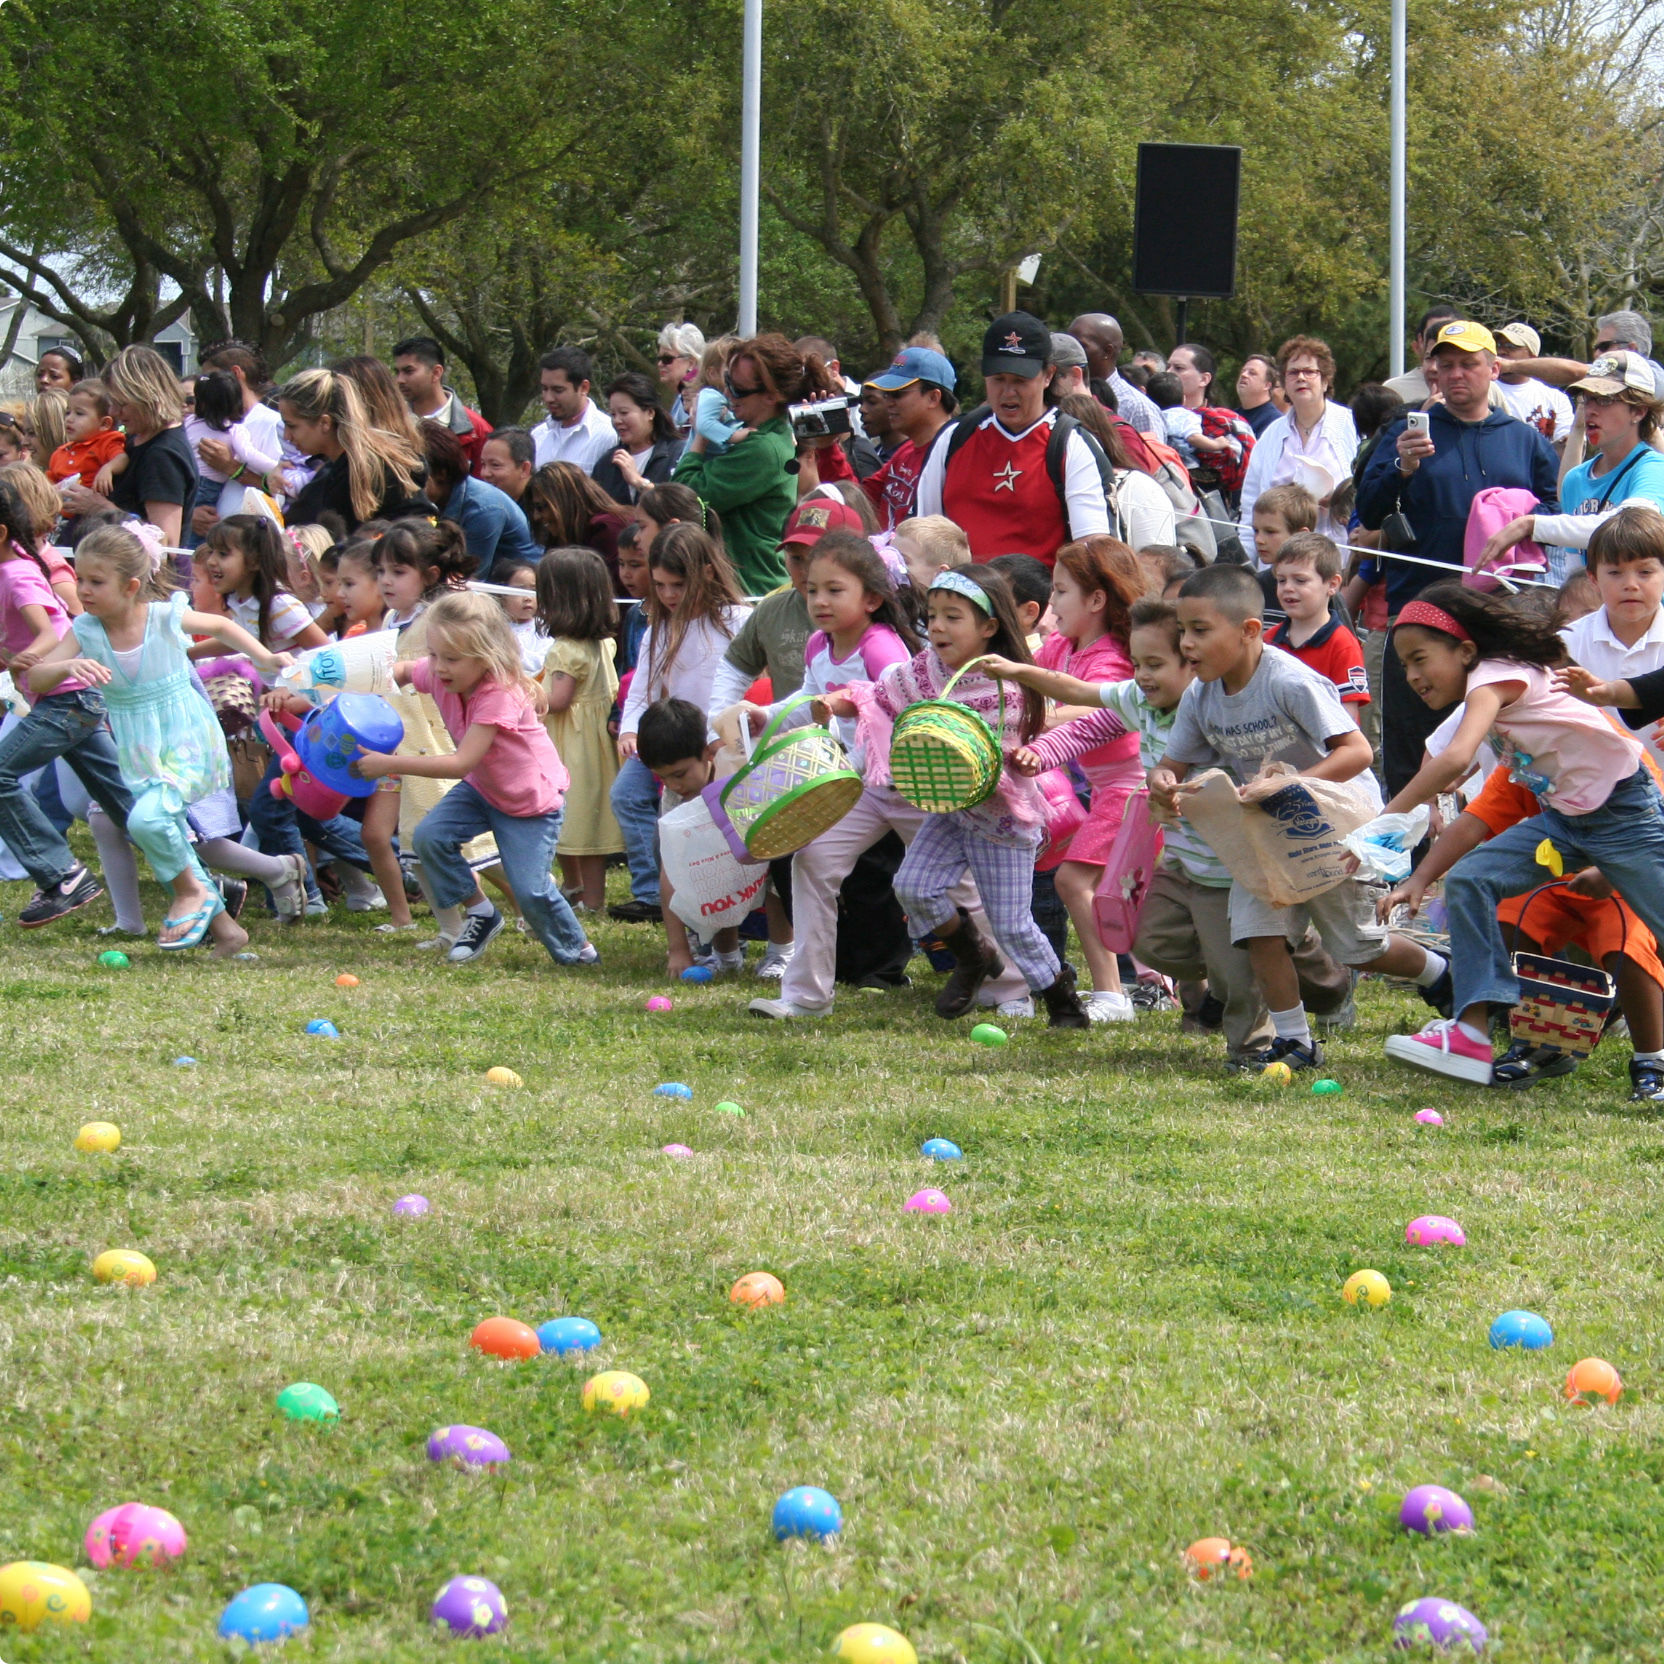 Easter kids running wctyce